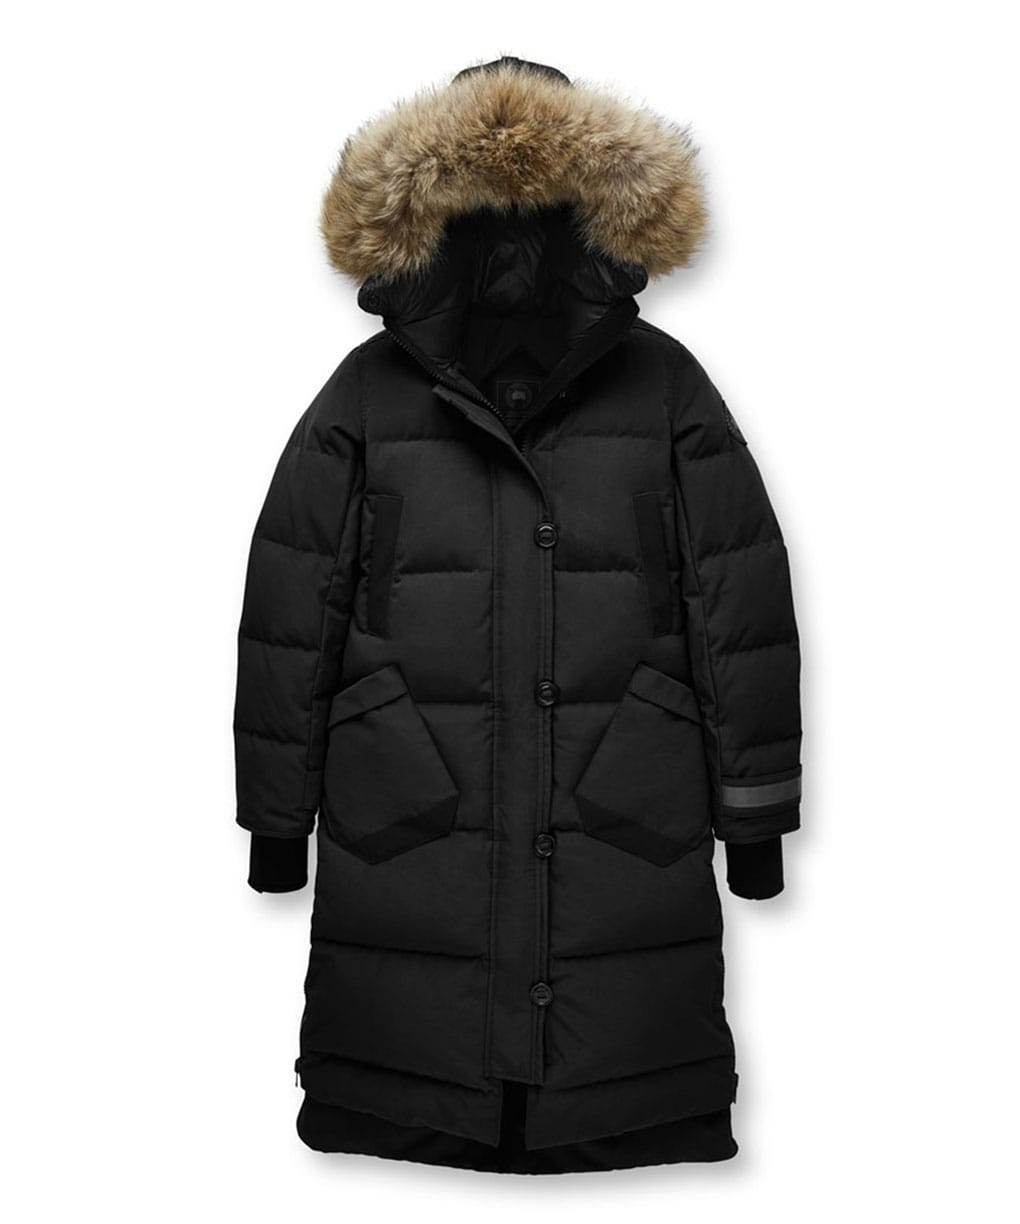 ALDRIDGE PARKA BLACK LABEL